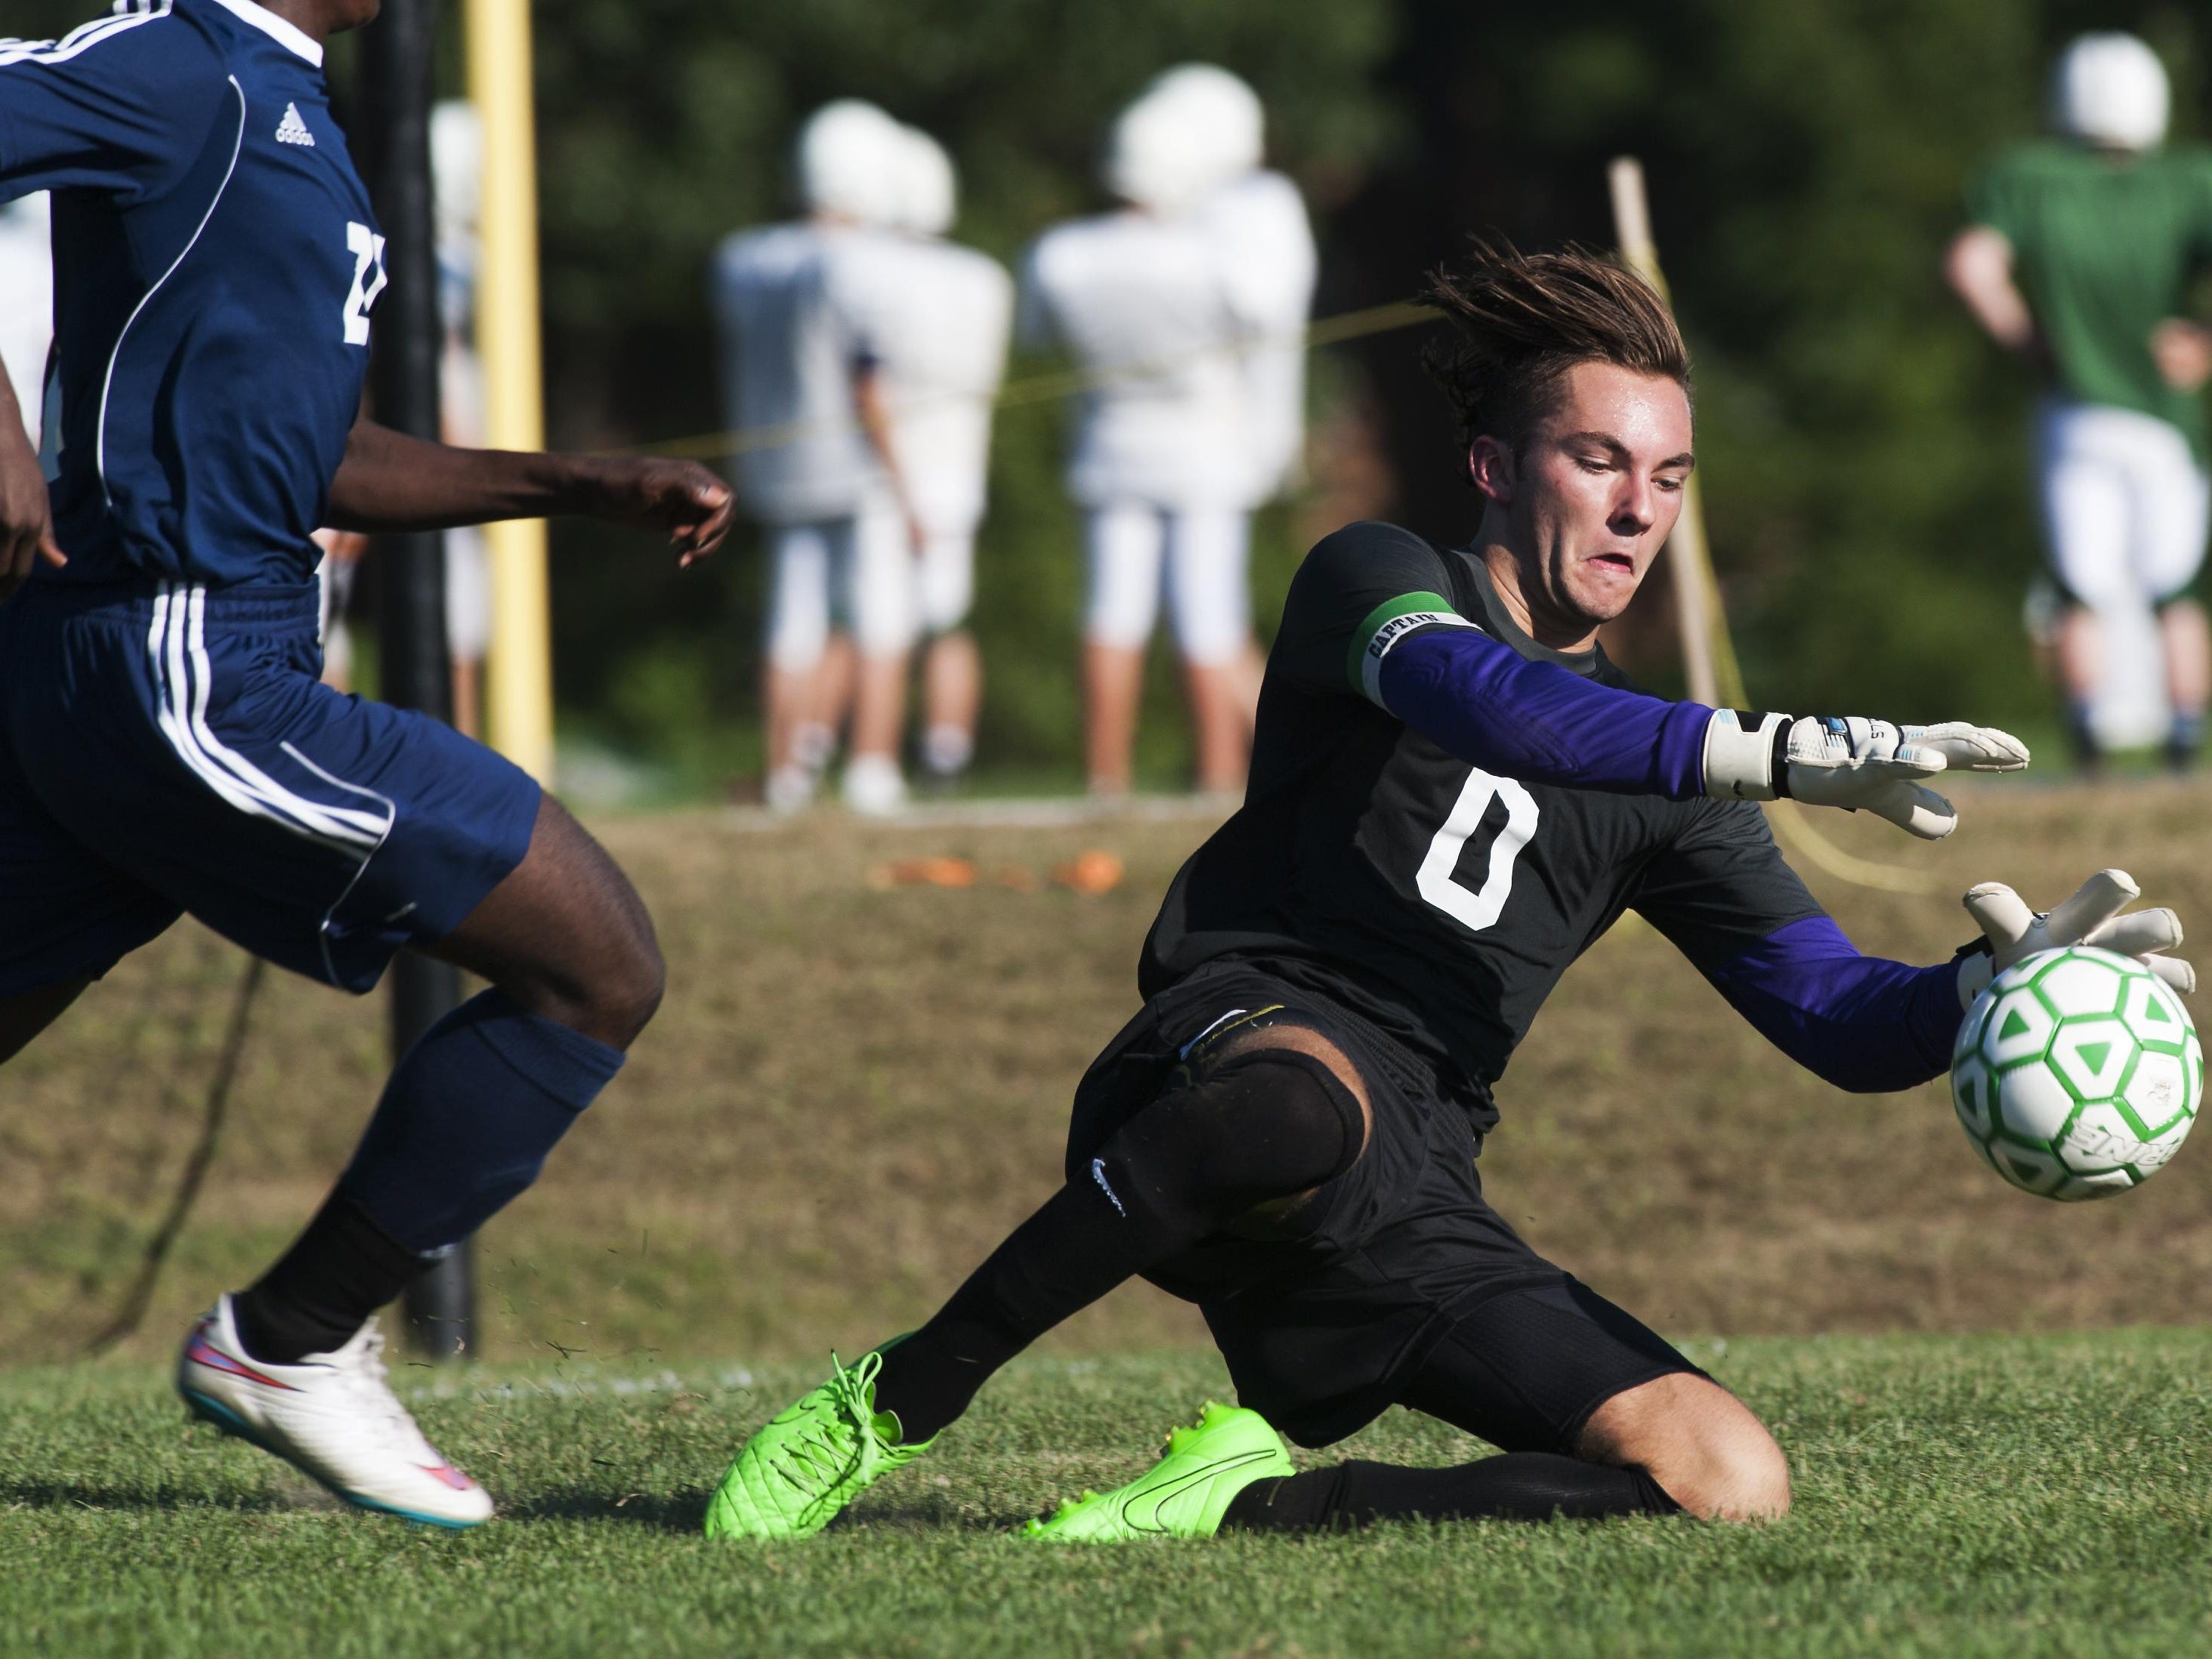 Rice goalie Leland Gazo (0) makes a save during the boys soccer game between the Burlington Seahorses and the Rice Green Knights earlier this season.